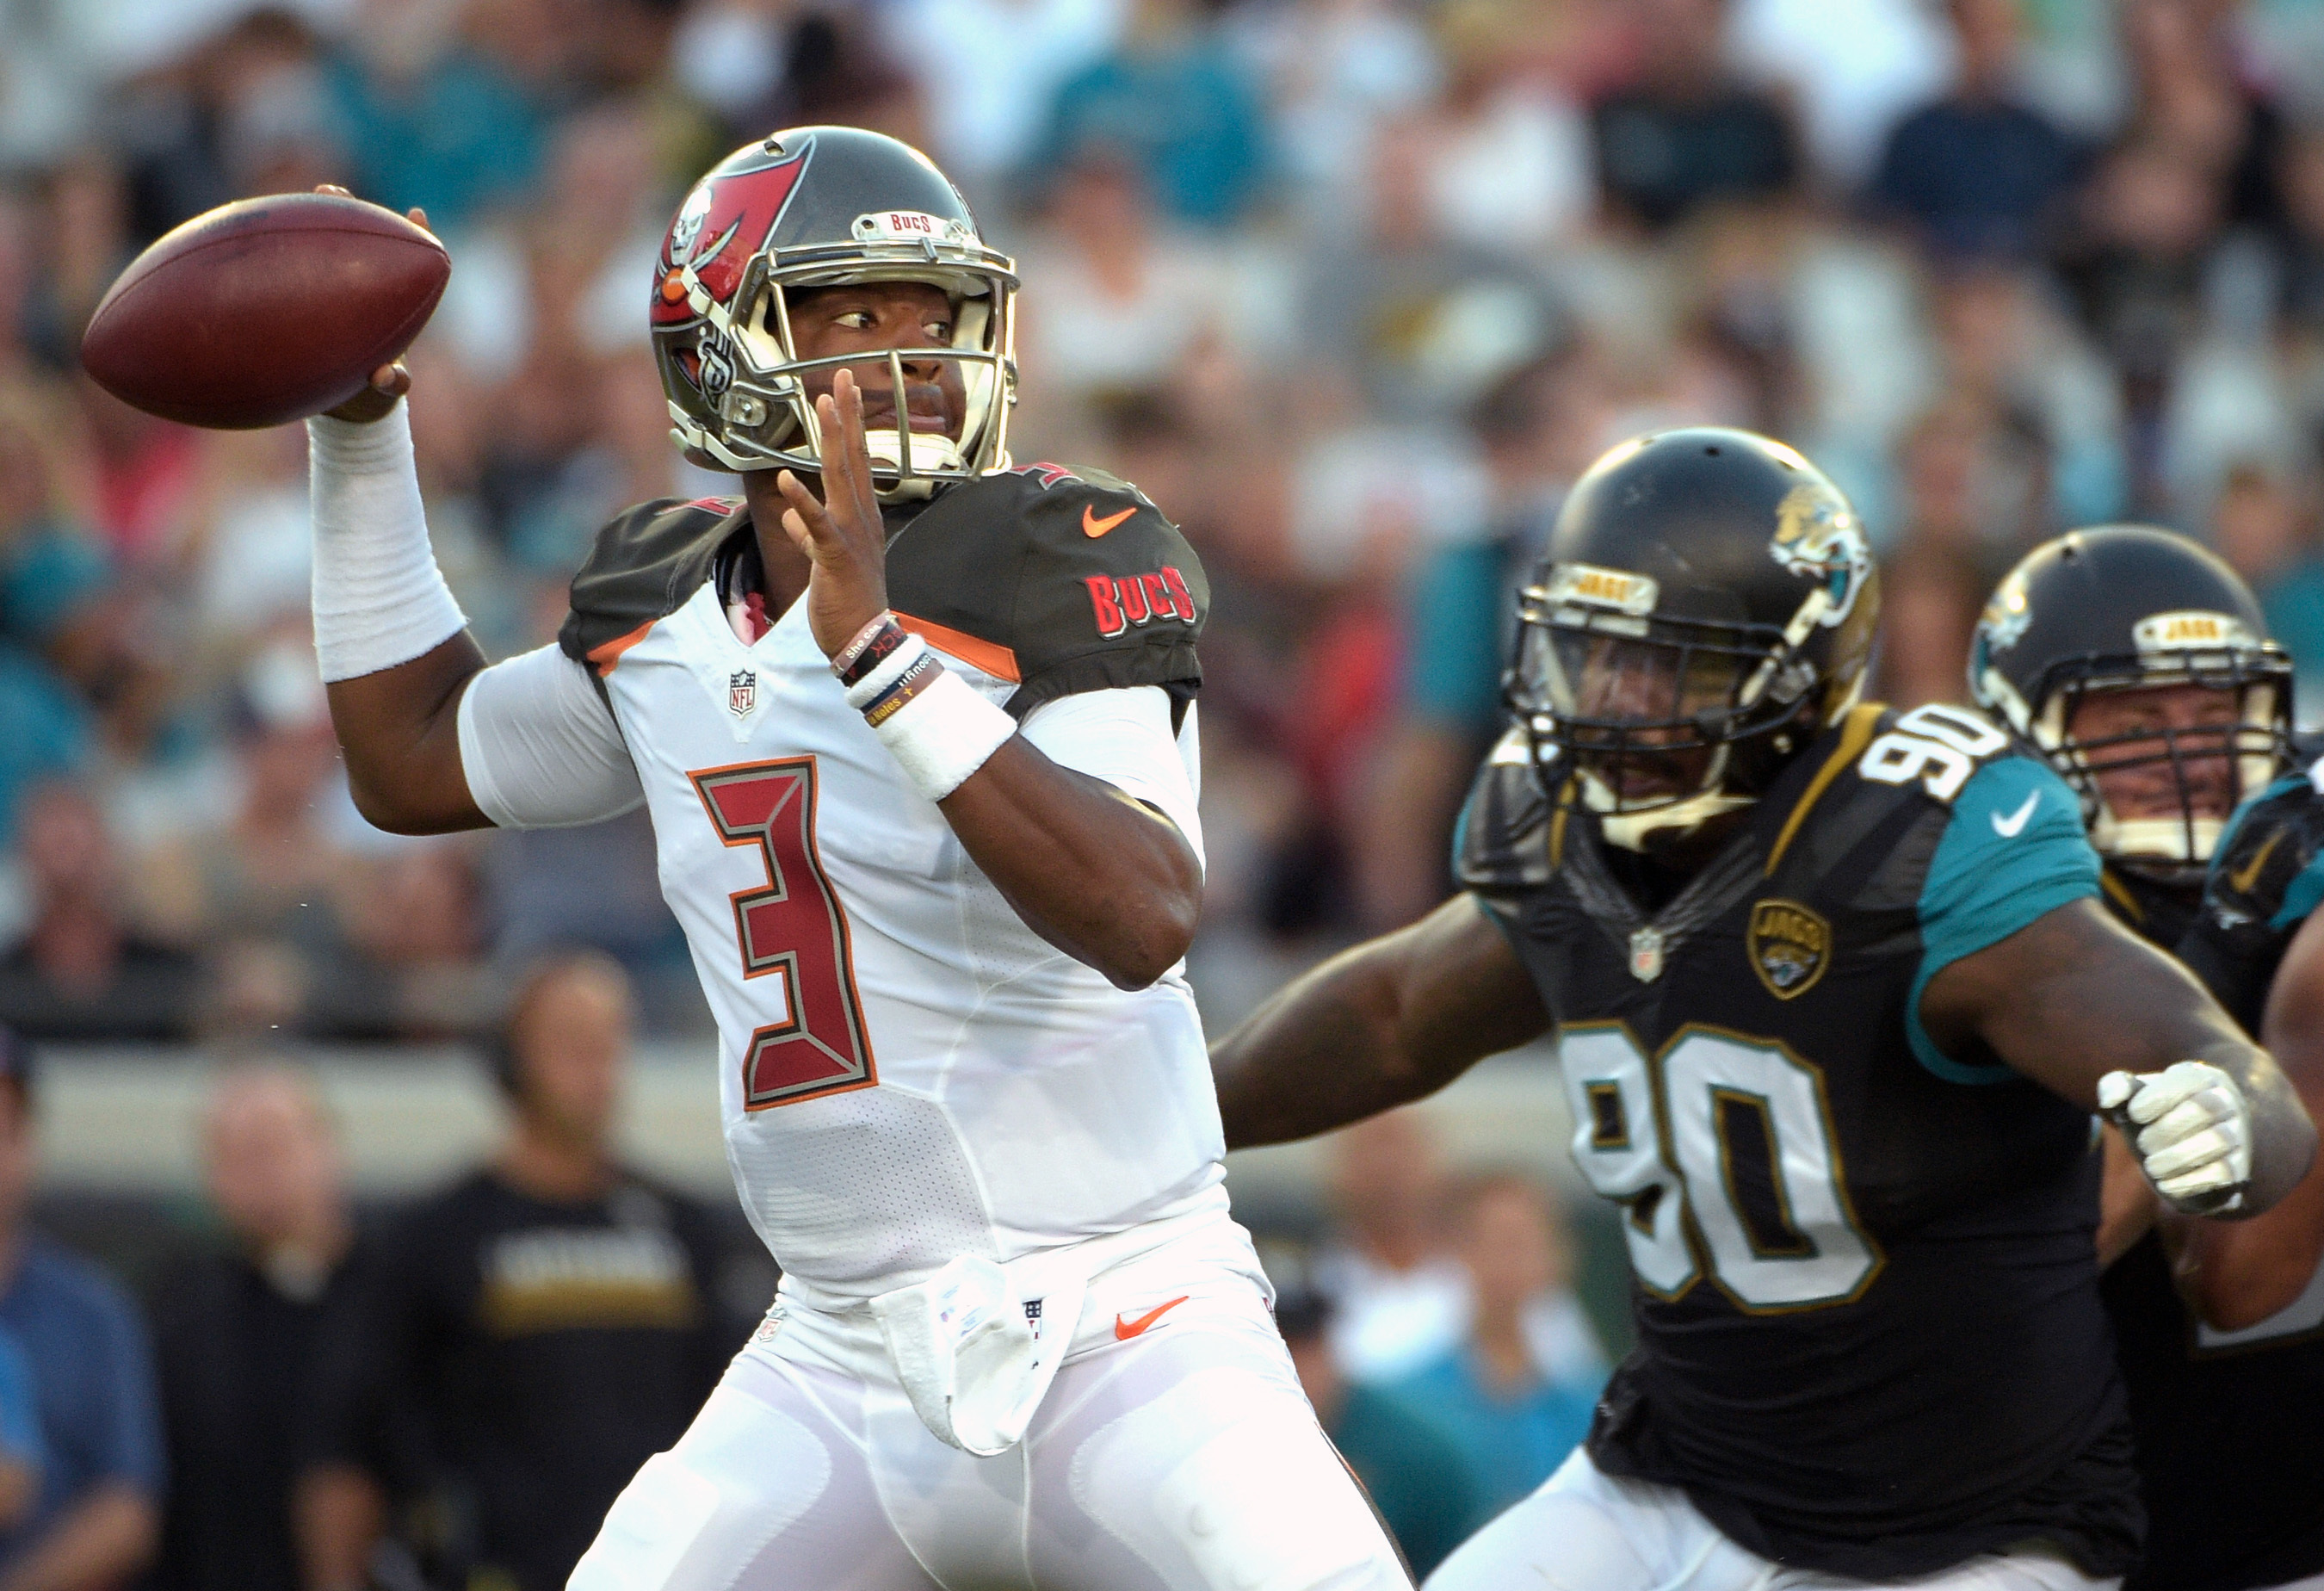 FILE - In this Aug. 20, 2016, file photo, Tampa Bay Buccaneers quarterback Jameis Winston (3) throws a pass as he is pressured by Jacksonville Jaguars defensive tackle Malik Jackson (90) during the first half of an NFL preseason football game in Jacksonvi